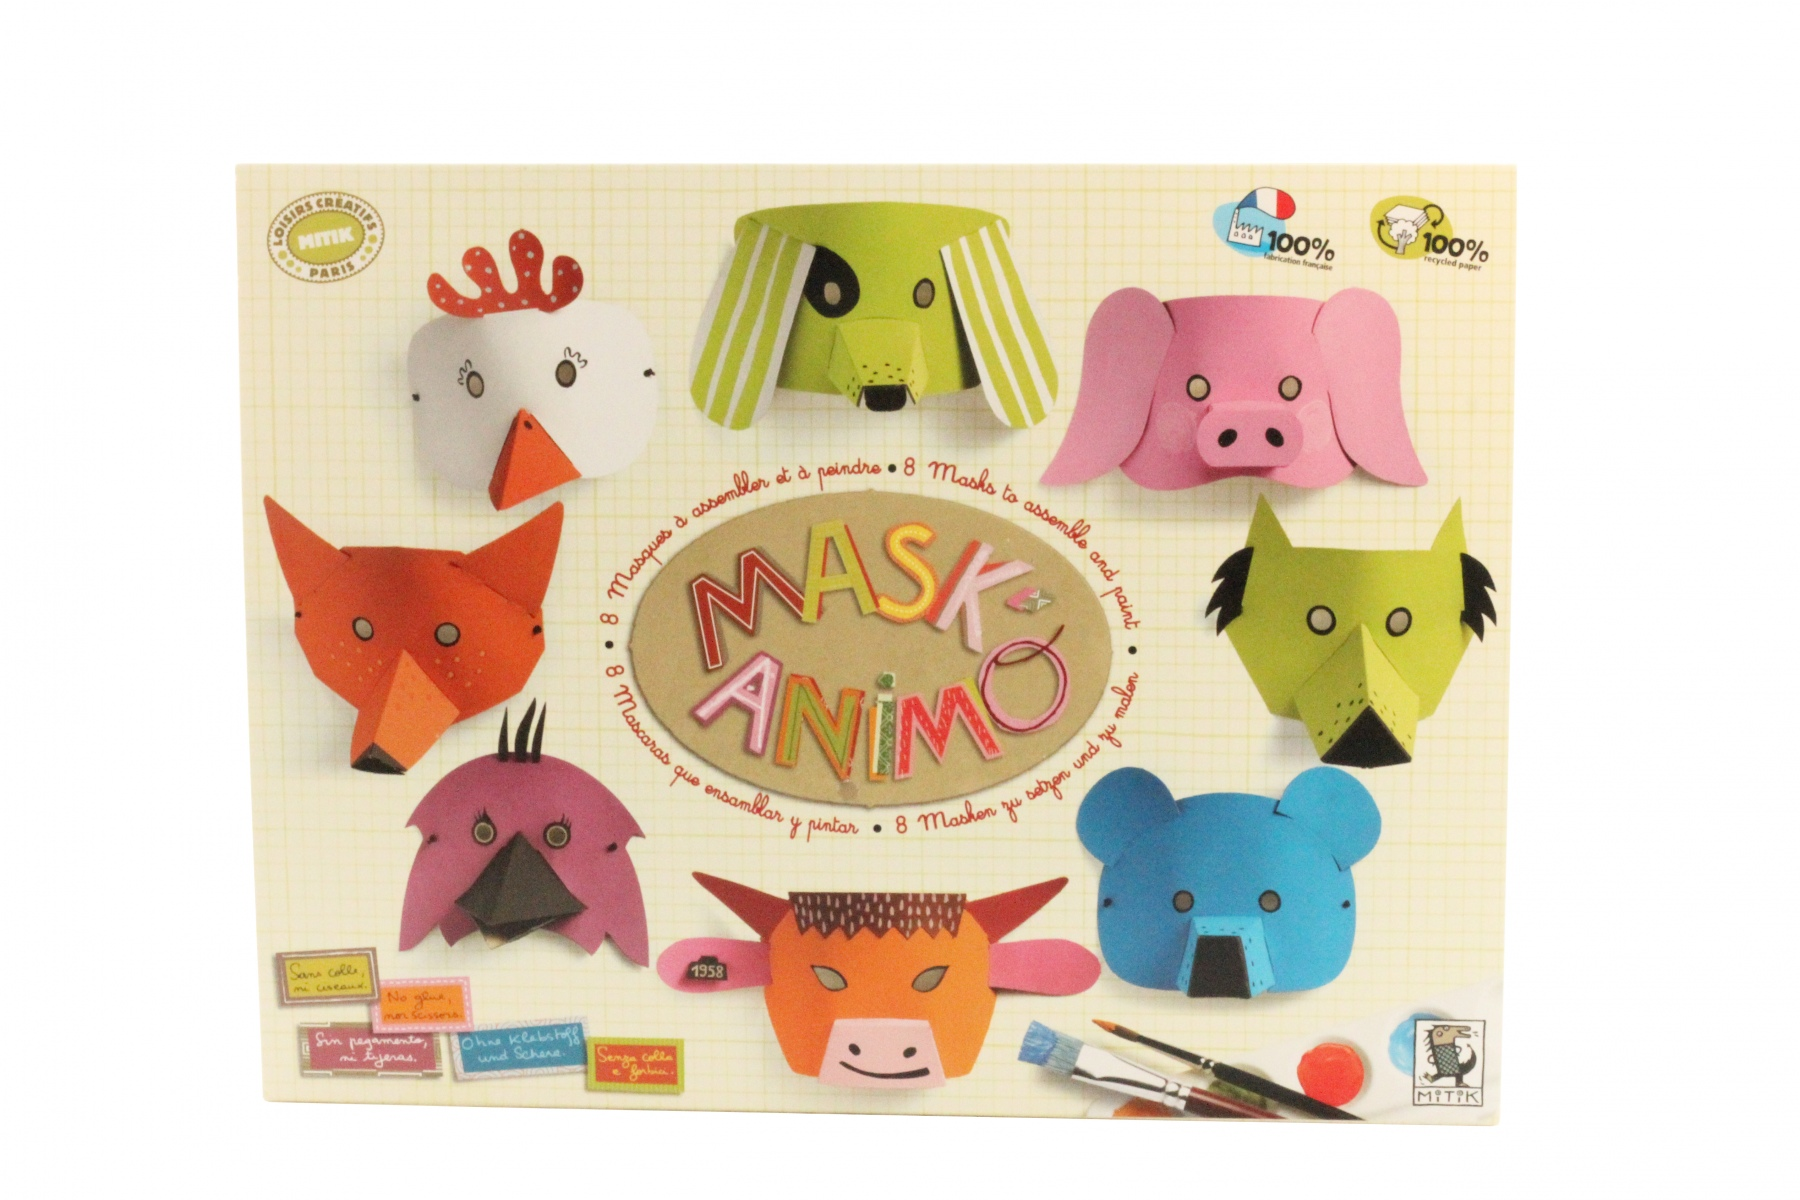 mask 39 animo masques d 39 animaux en carton de mitik. Black Bedroom Furniture Sets. Home Design Ideas